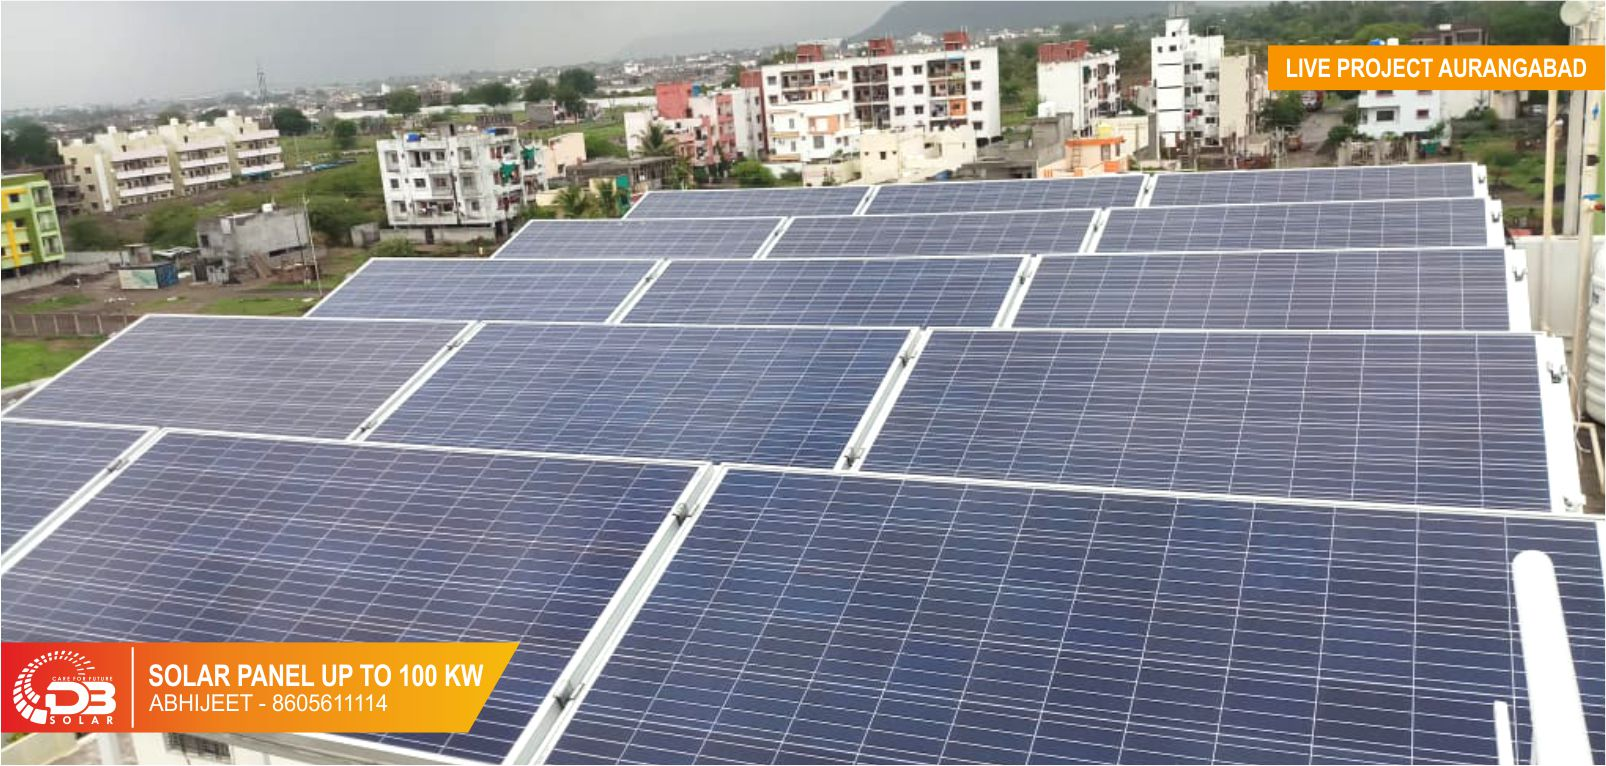 DB Solar-Care For Future Solar Panel For Your Home & Business